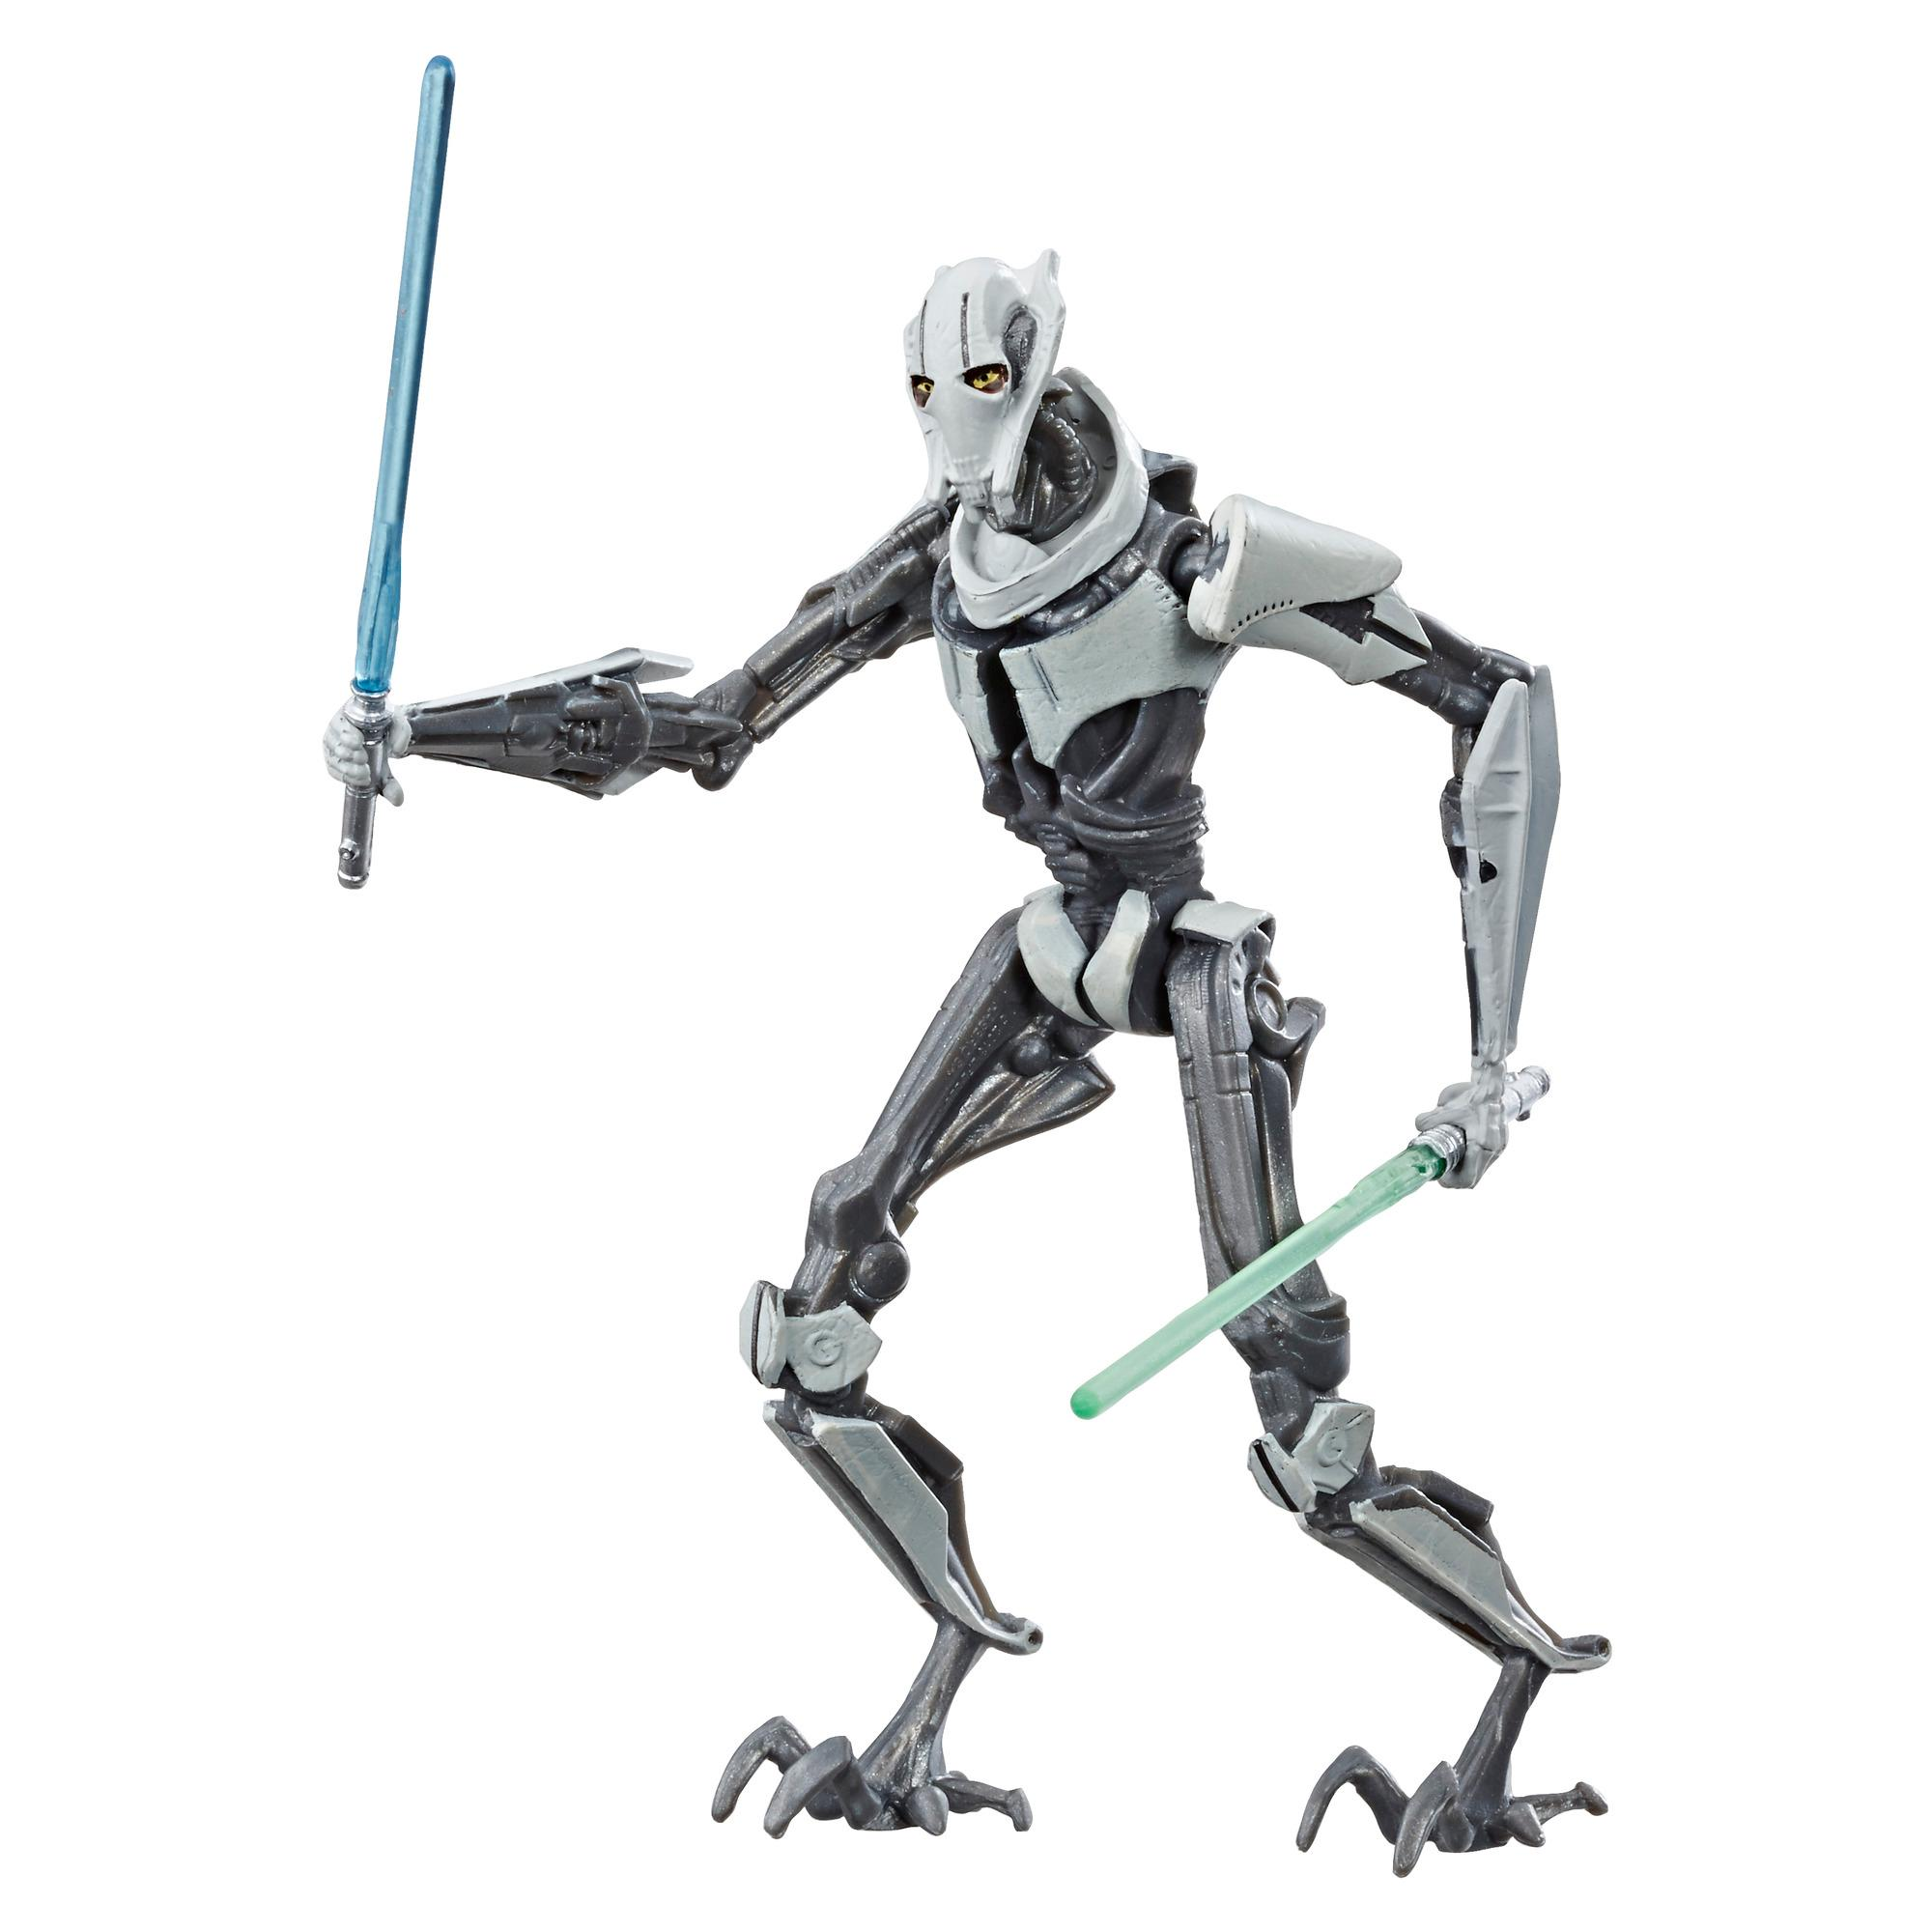 Star Wars Galaxy of Adventures General Grievous 3.75-Inch Figure